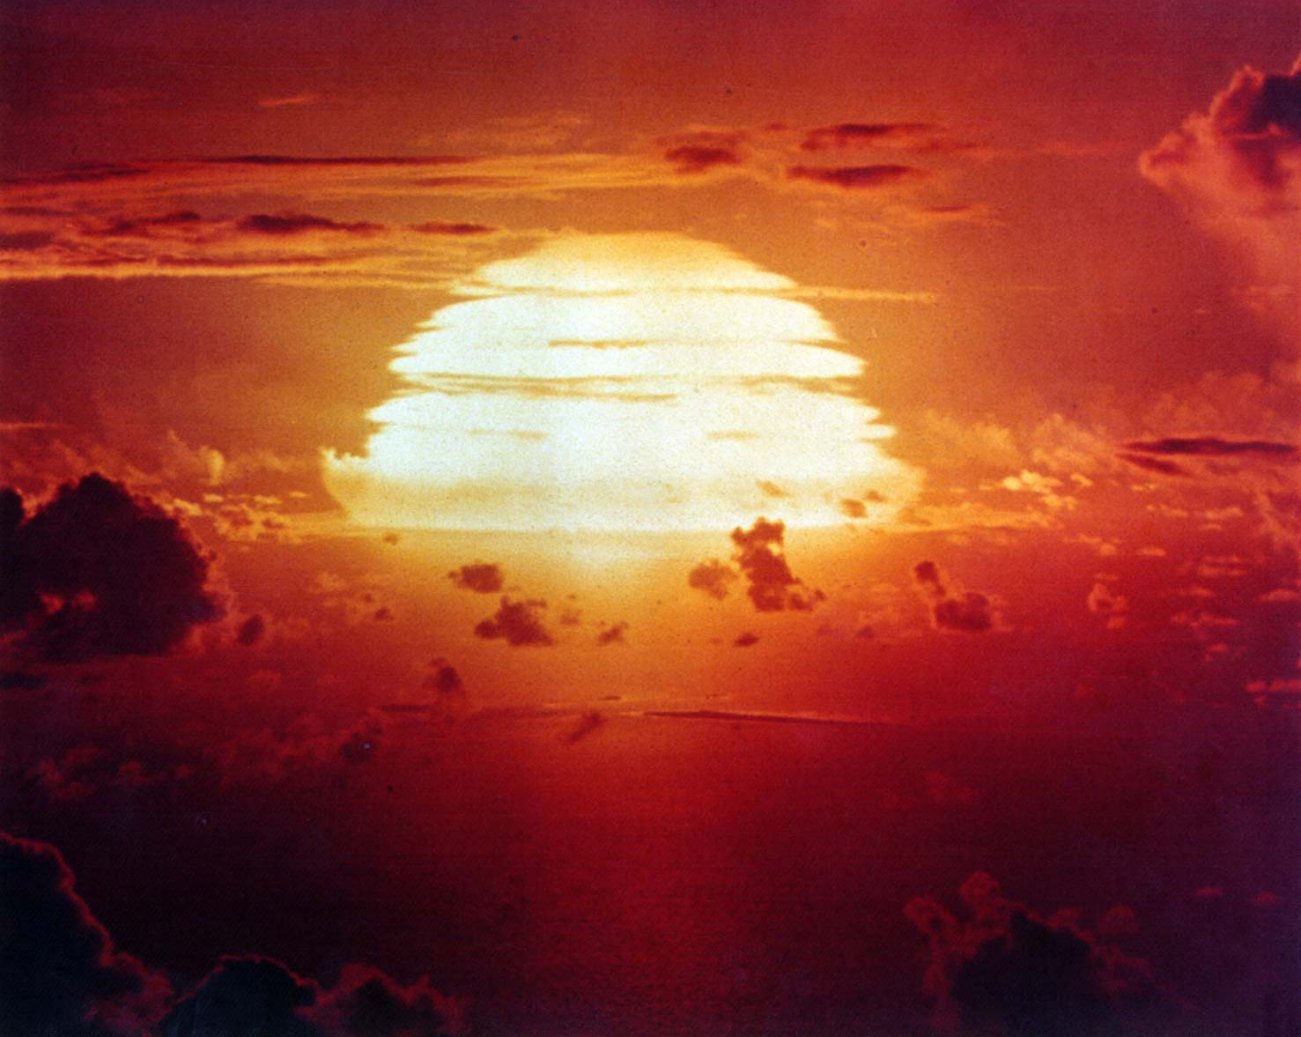 America Actually Had a Plan to Survive a Nuclear War with Russia